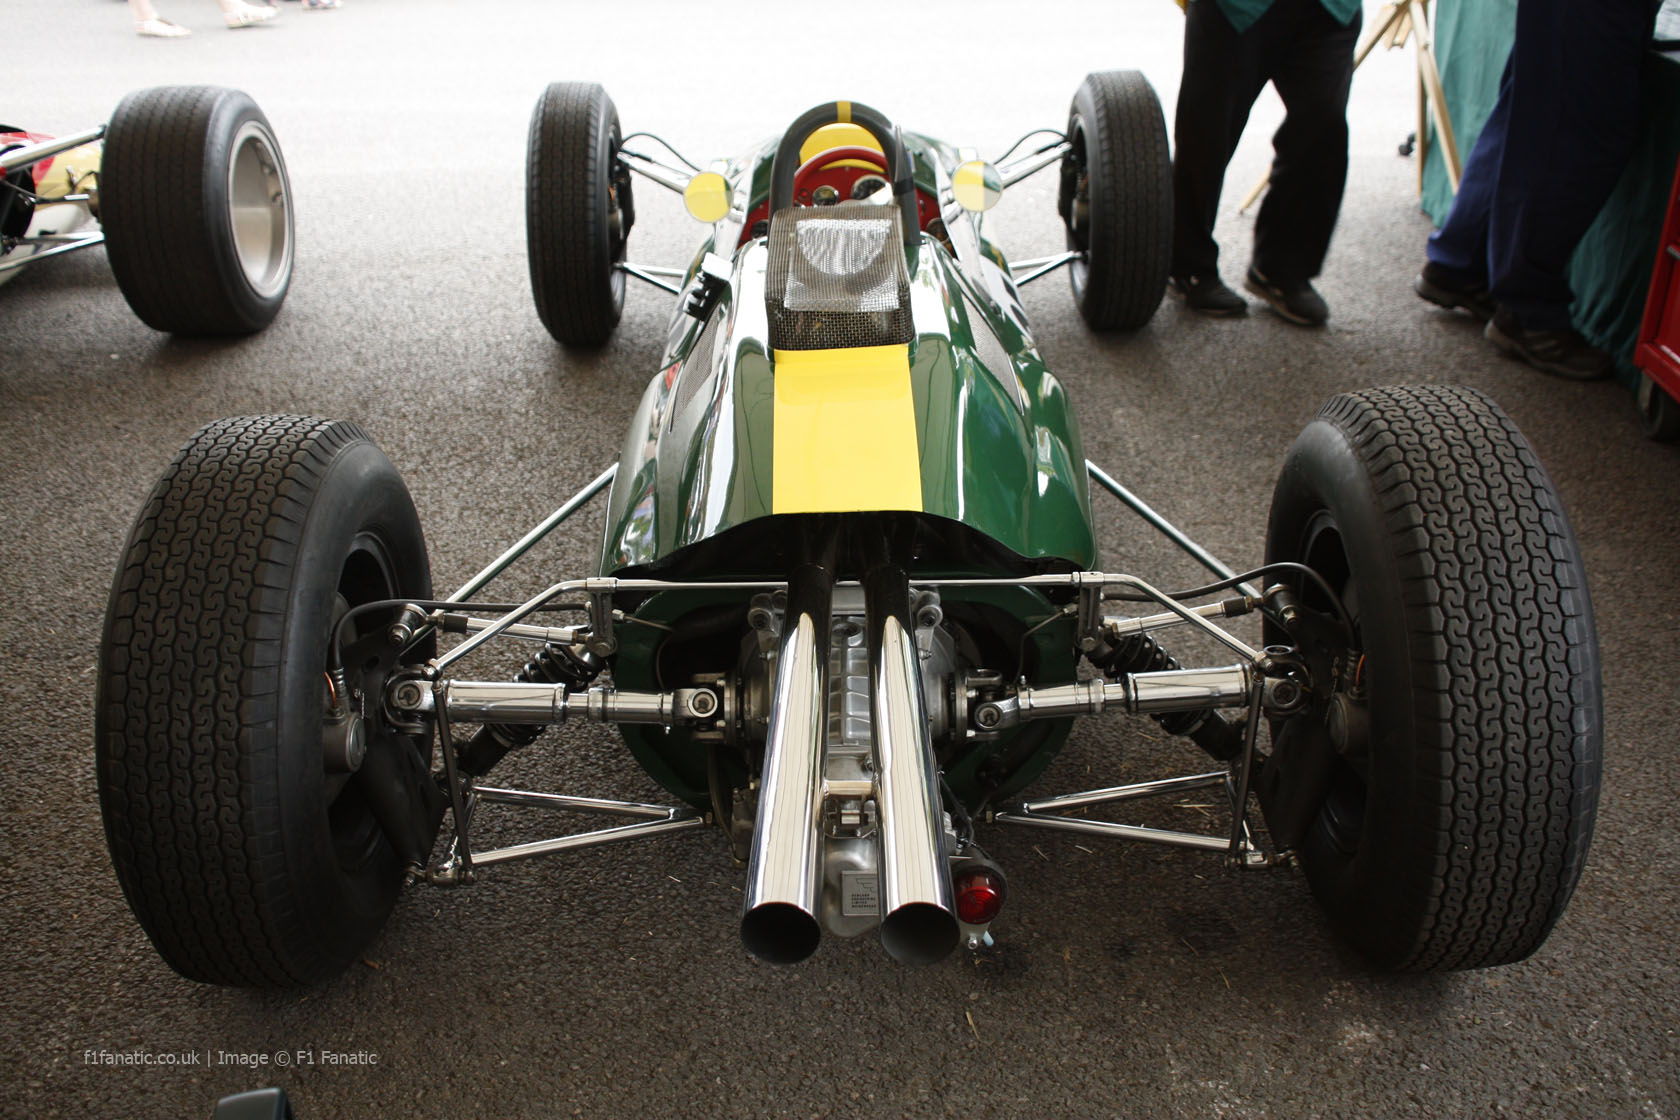 Lotus 25, Goodwood Festival of Speed, 2014